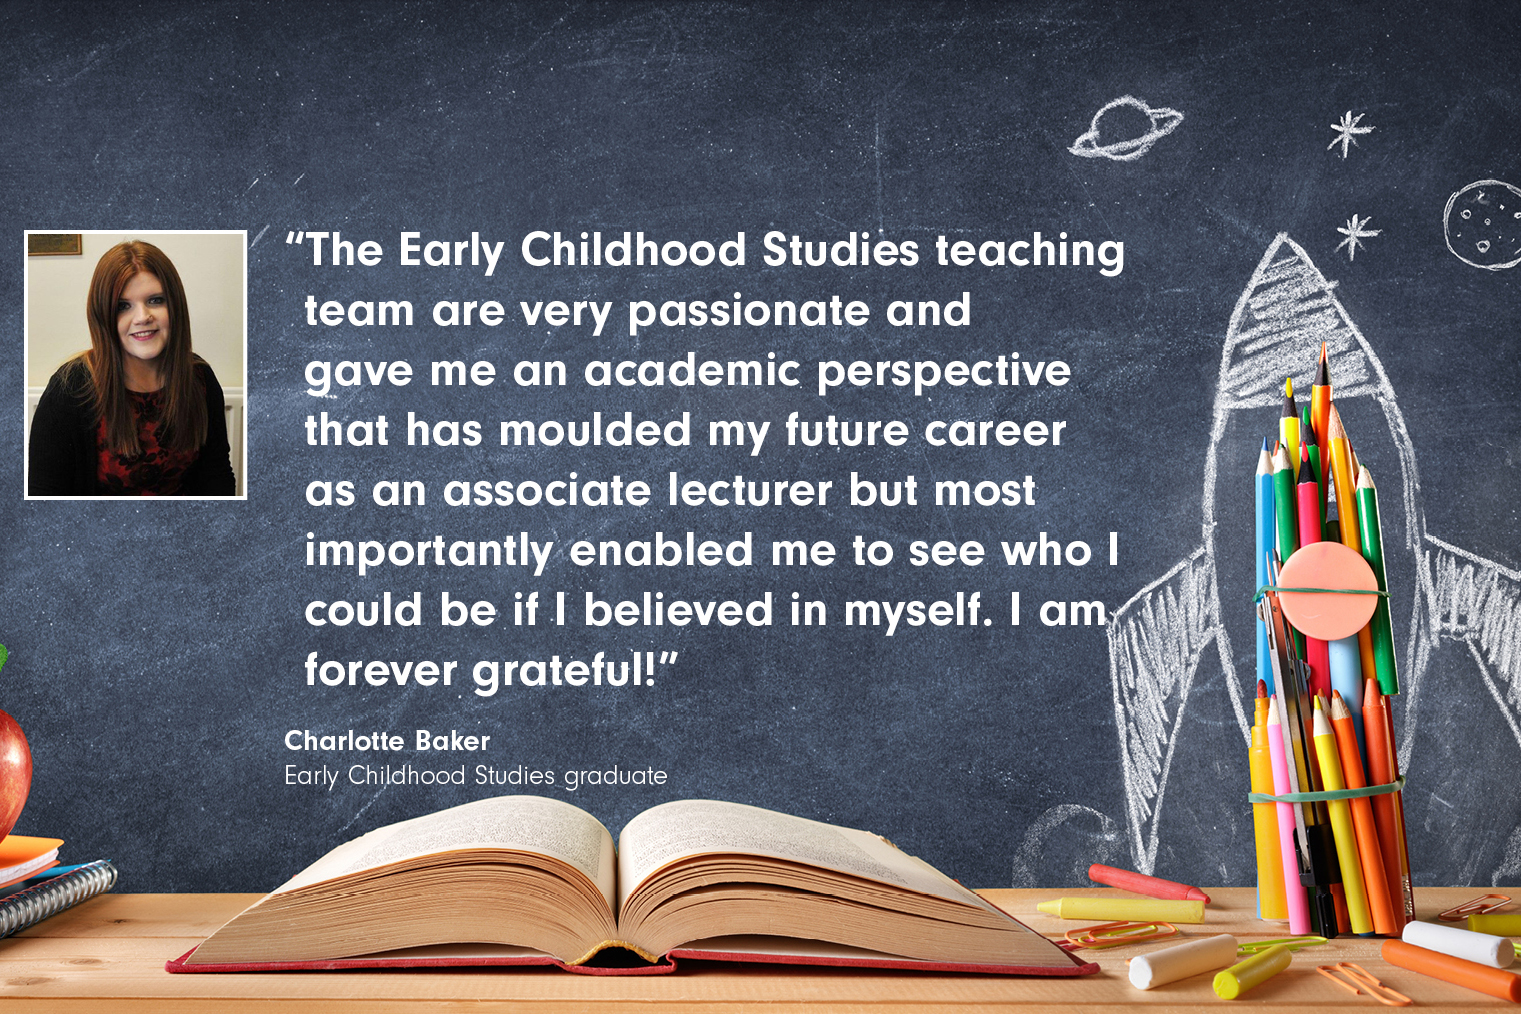 Student testimonial quote from Charlotte Baker